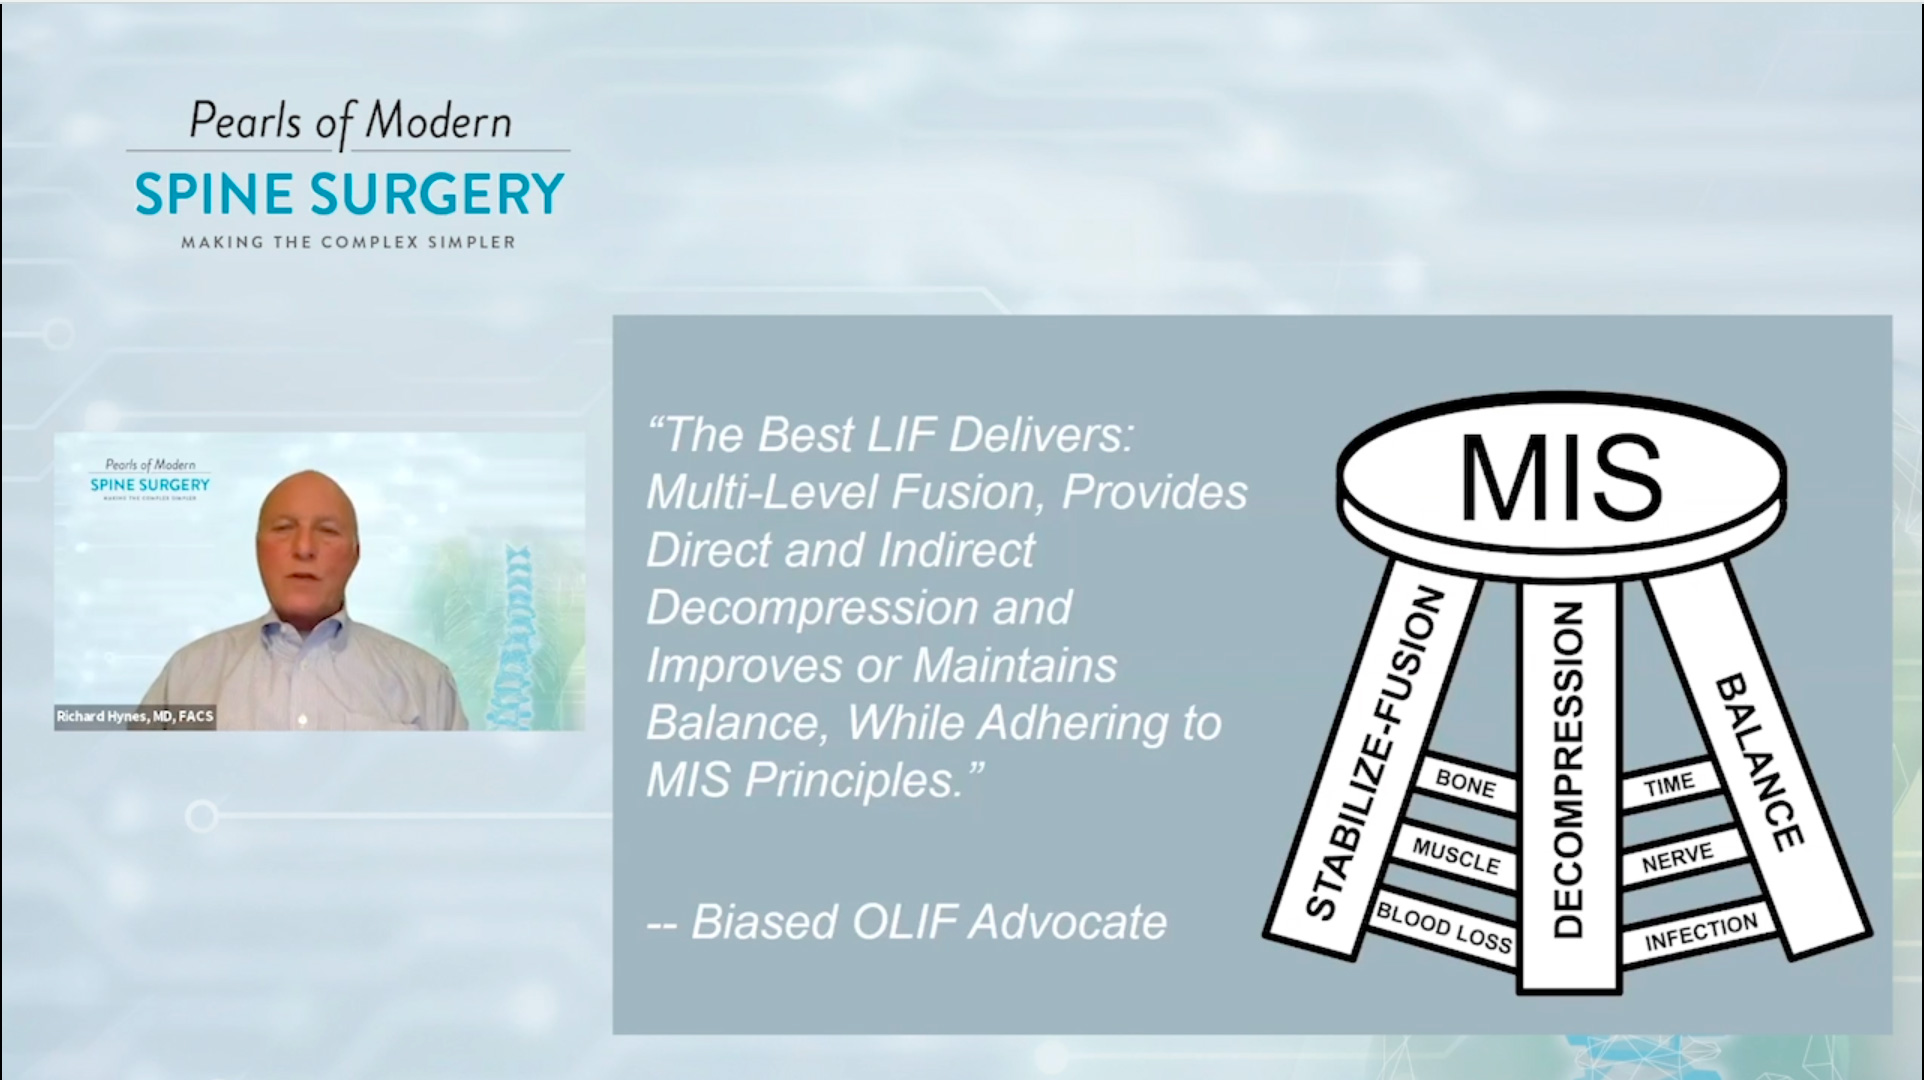 Pearls of Modern Spine Surgery - OLIF - Dr. Hynes